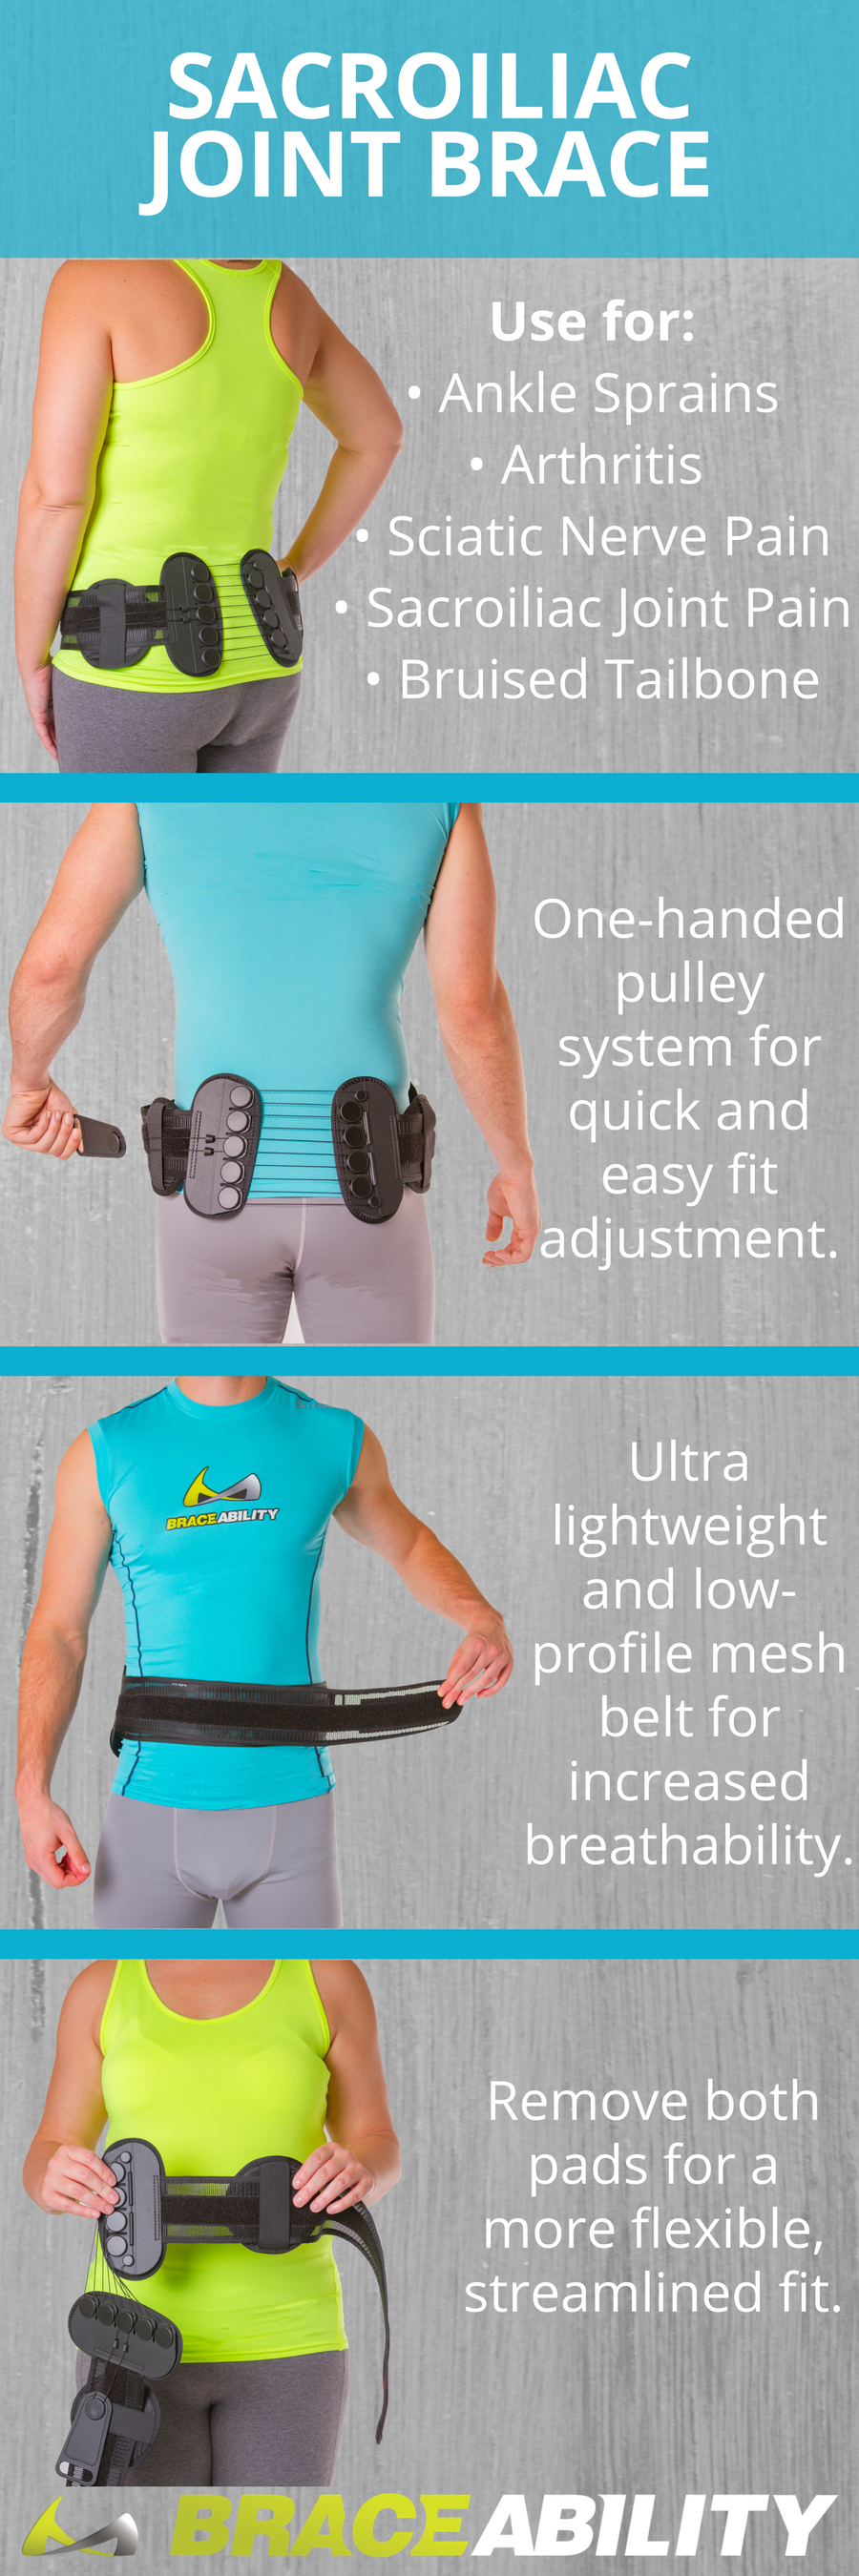 Pin On Back Pain Treatment Braces Belts Supports For Lower Middle Upper Back Pain Relief